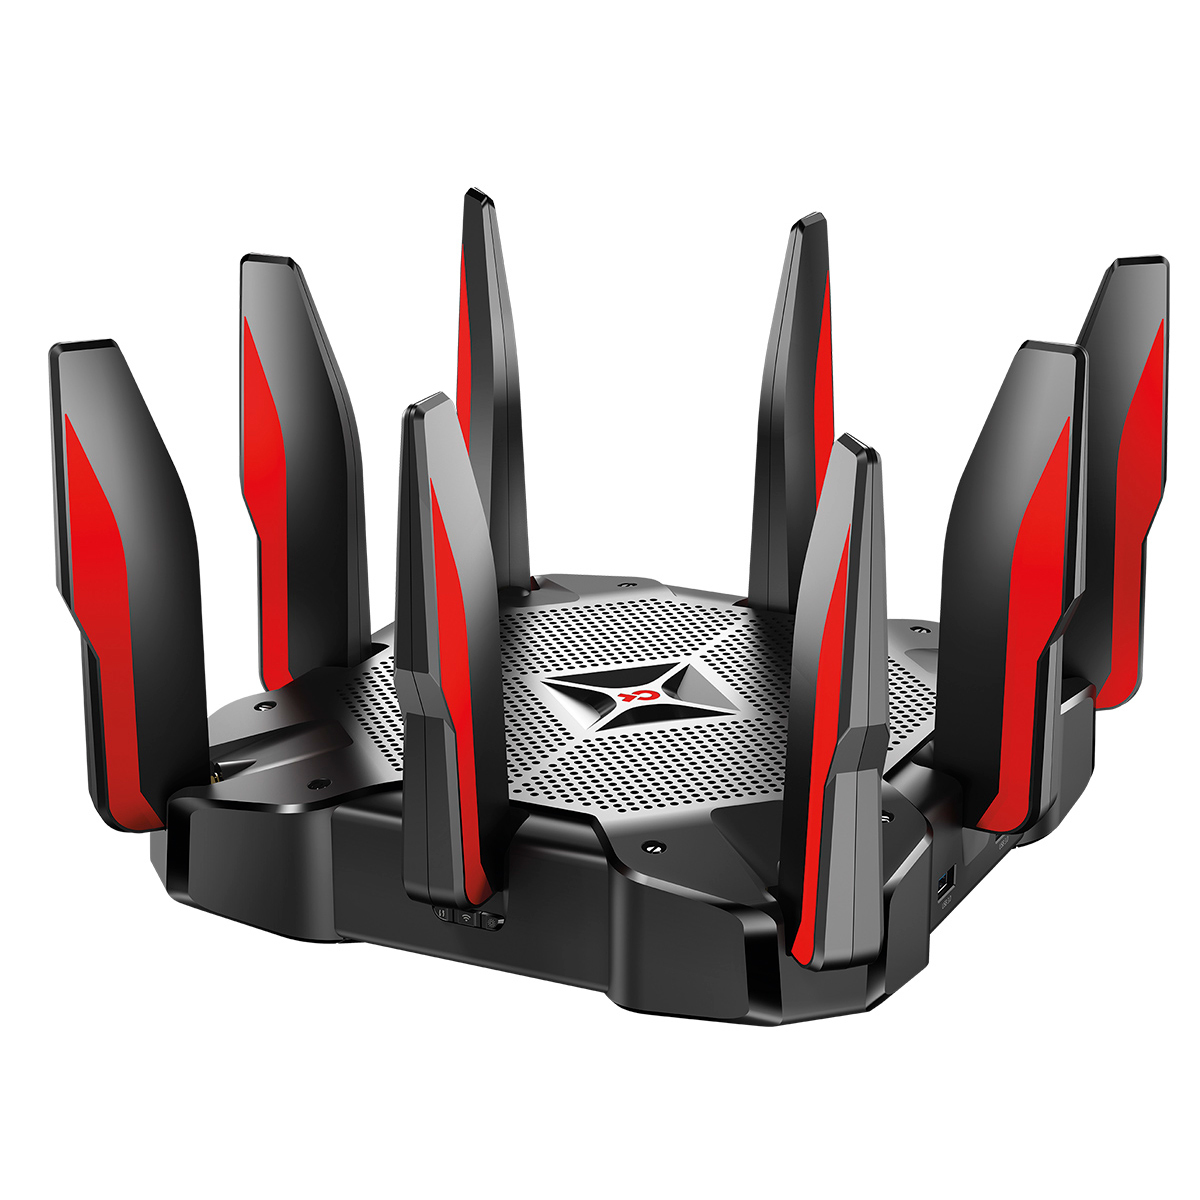 ROUTER GAMING TP-LINK ARCHER C5400X (INALAMBRICO, NEGRO)